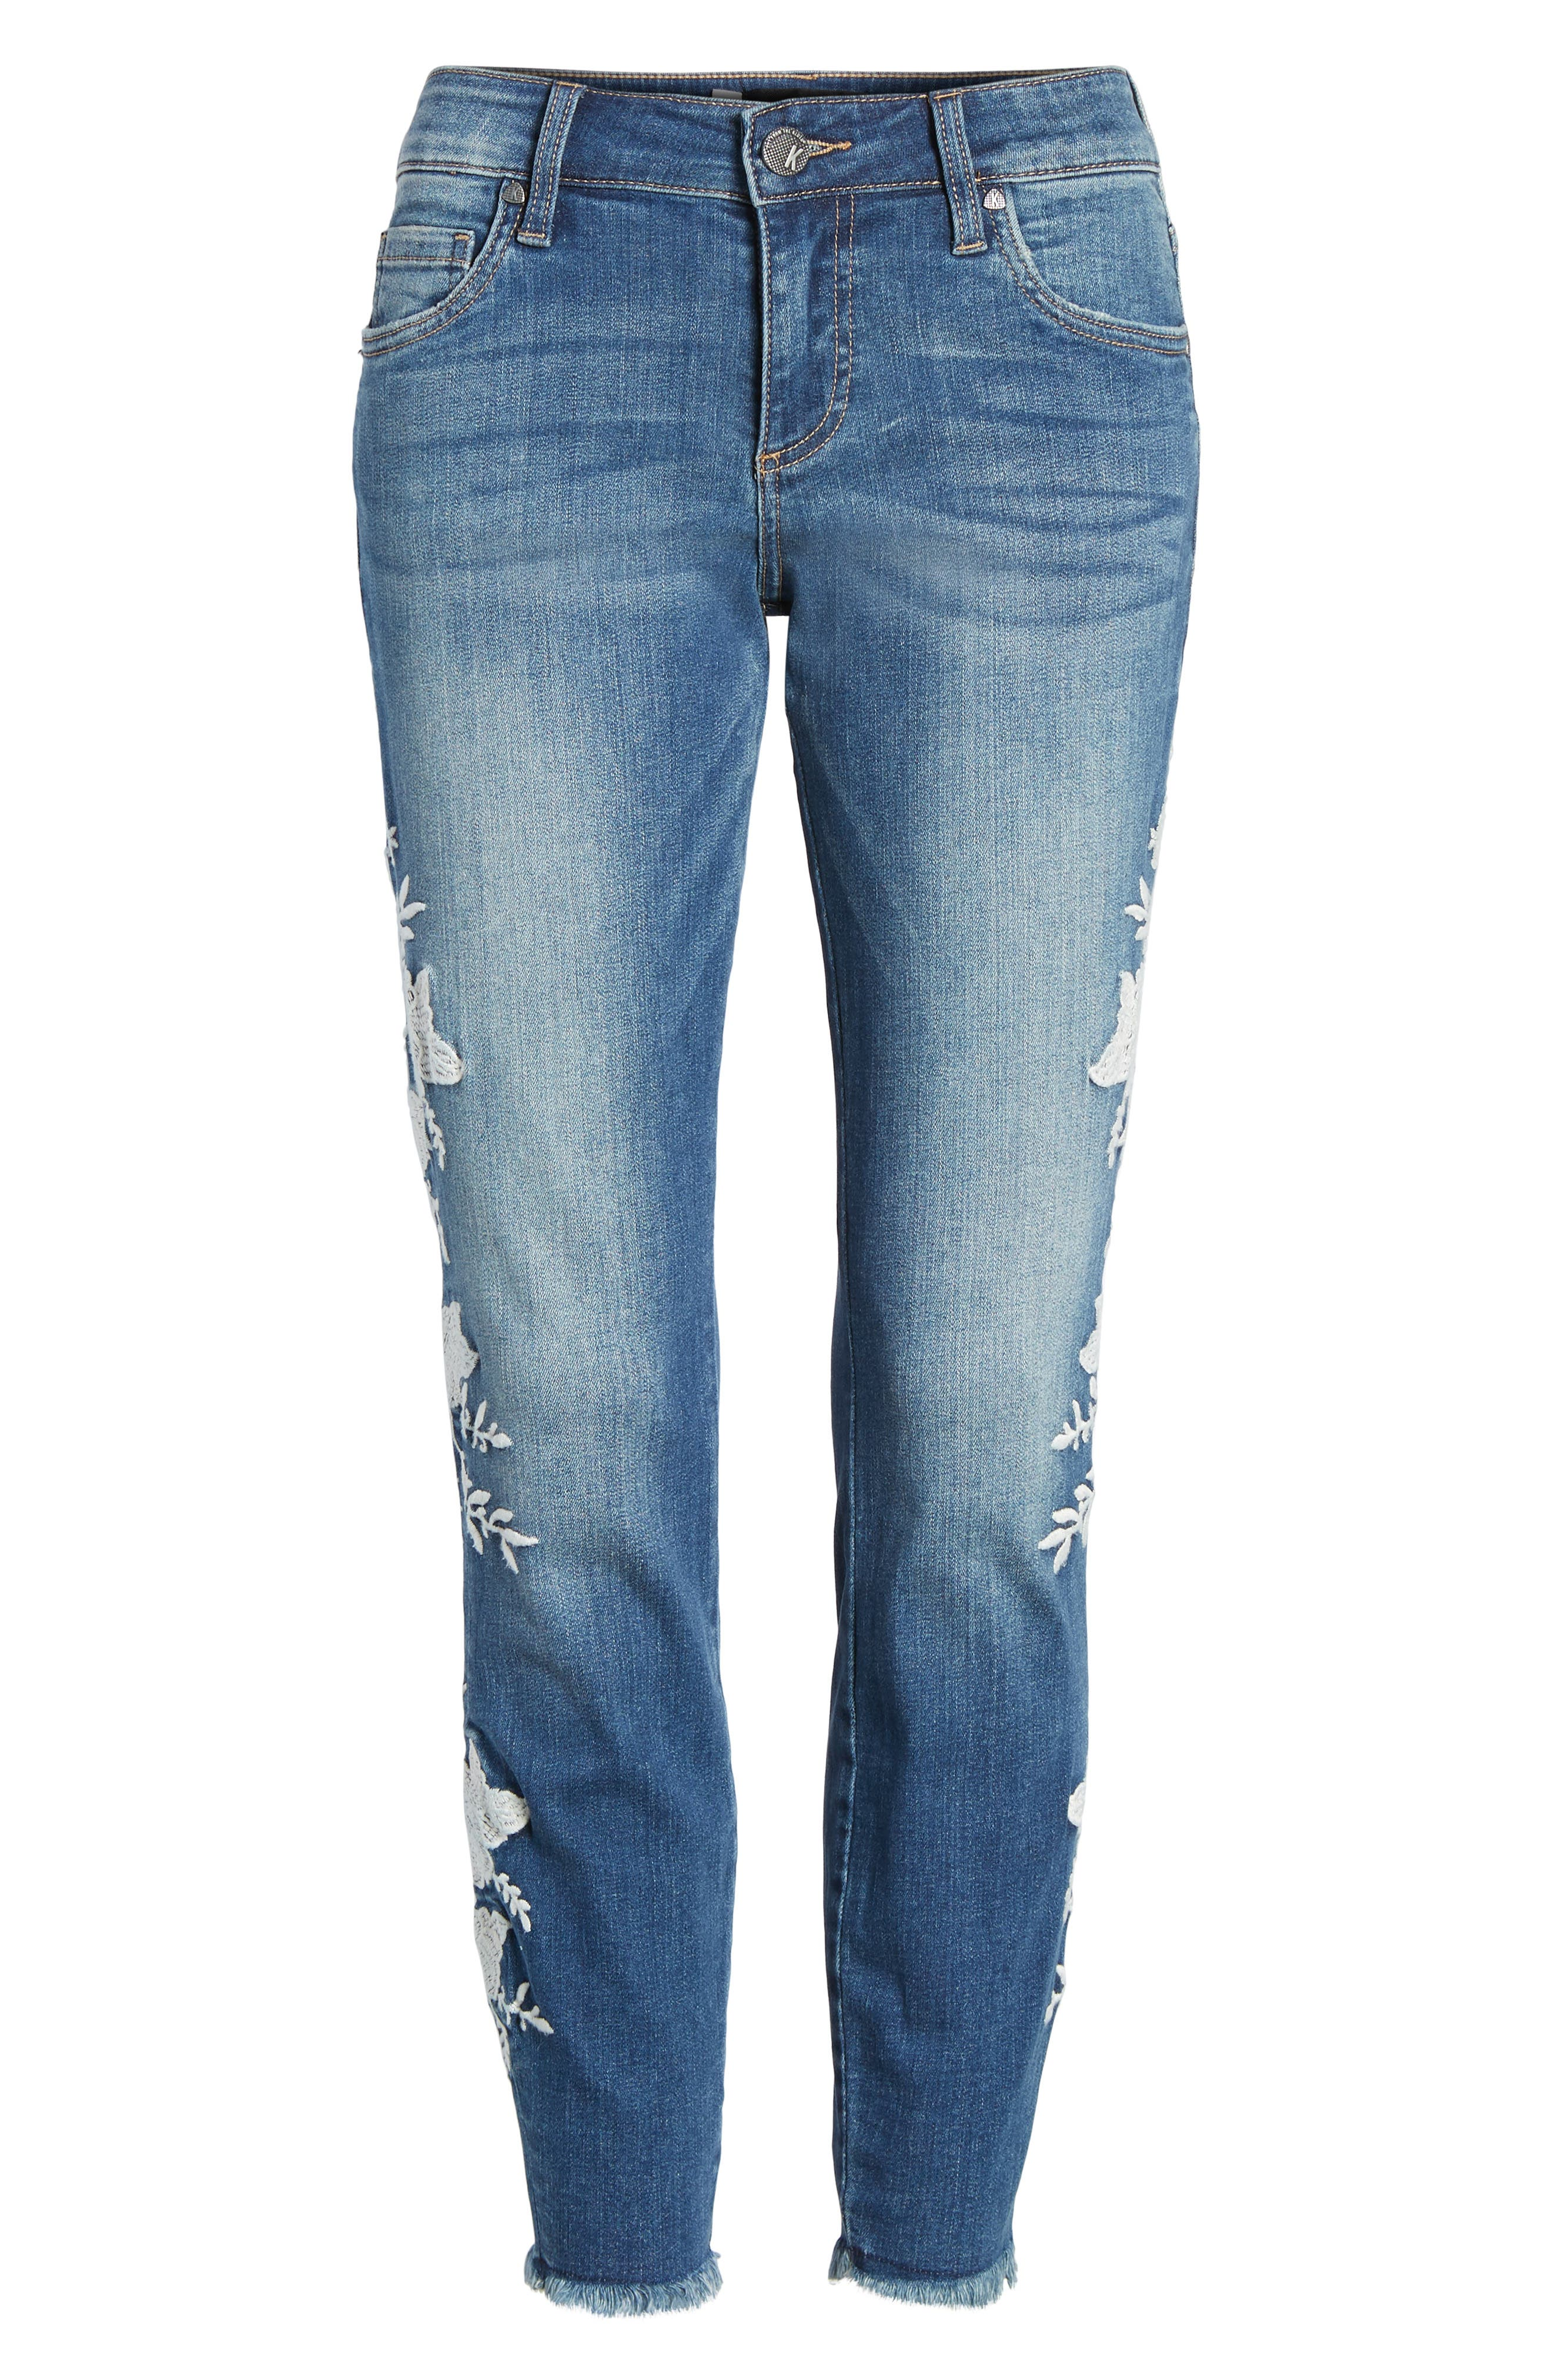 KUT from the Kloth Connie Embroidered Skinny Jeans,                             Alternate thumbnail 7, color,                             400